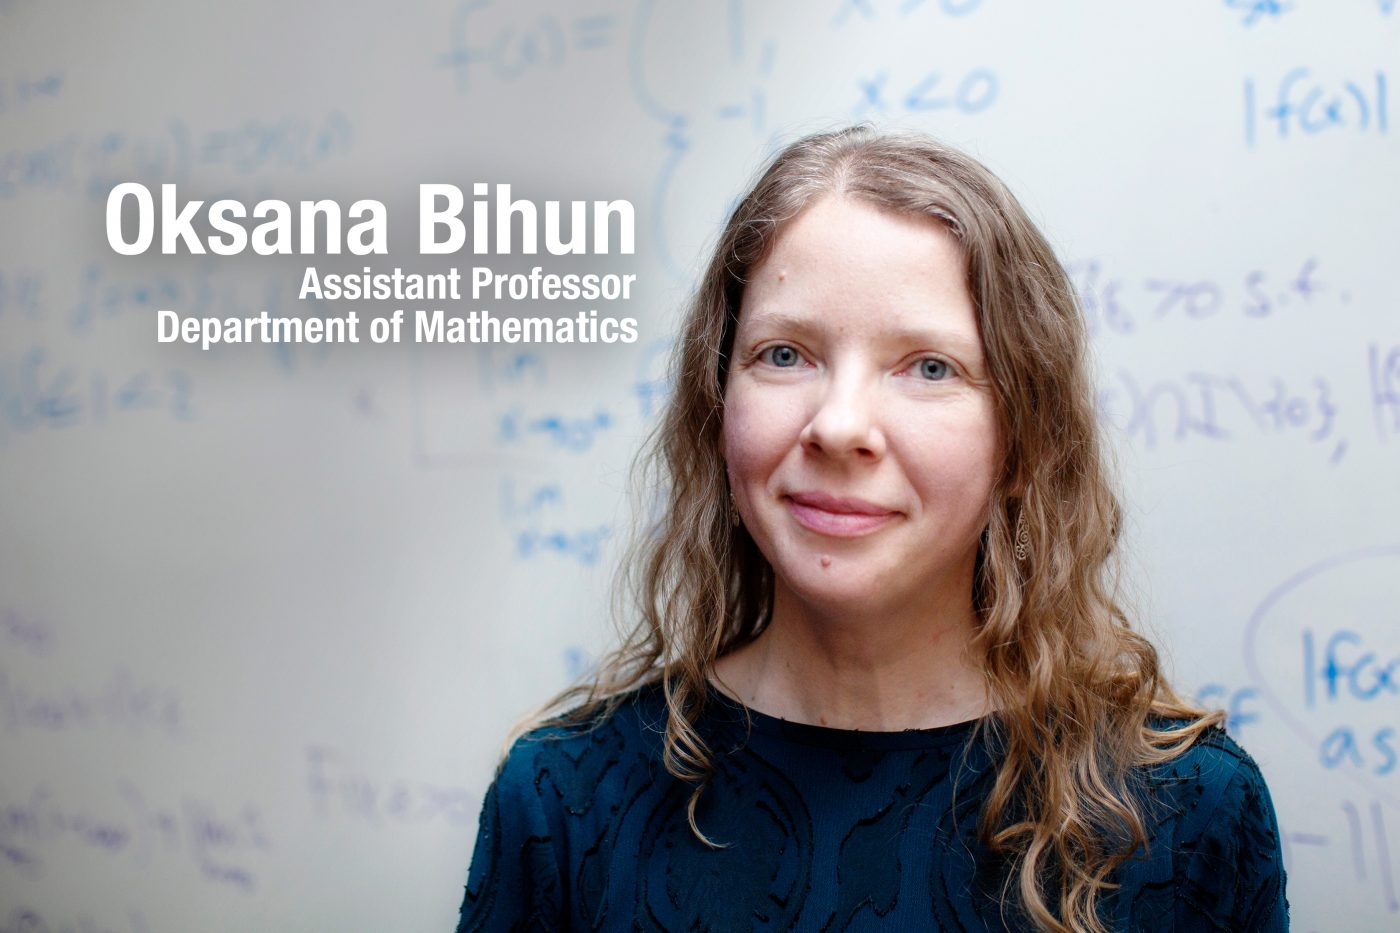 Oksana Bihun, assistant professor, Department of Mathematics